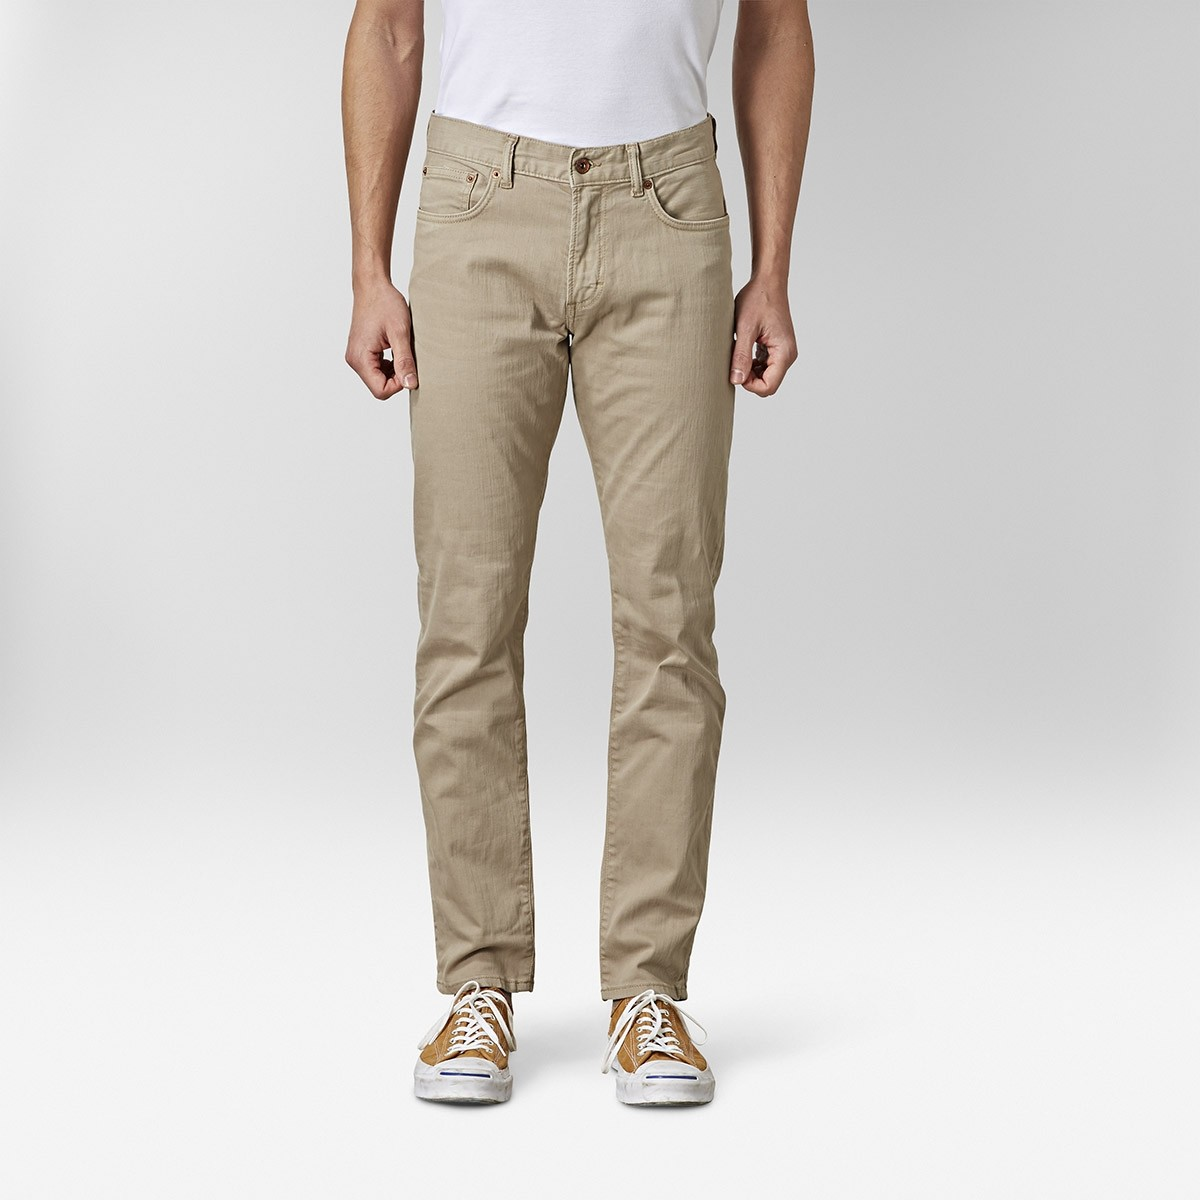 Bowery Jeans Beige | East West | Brothers.se